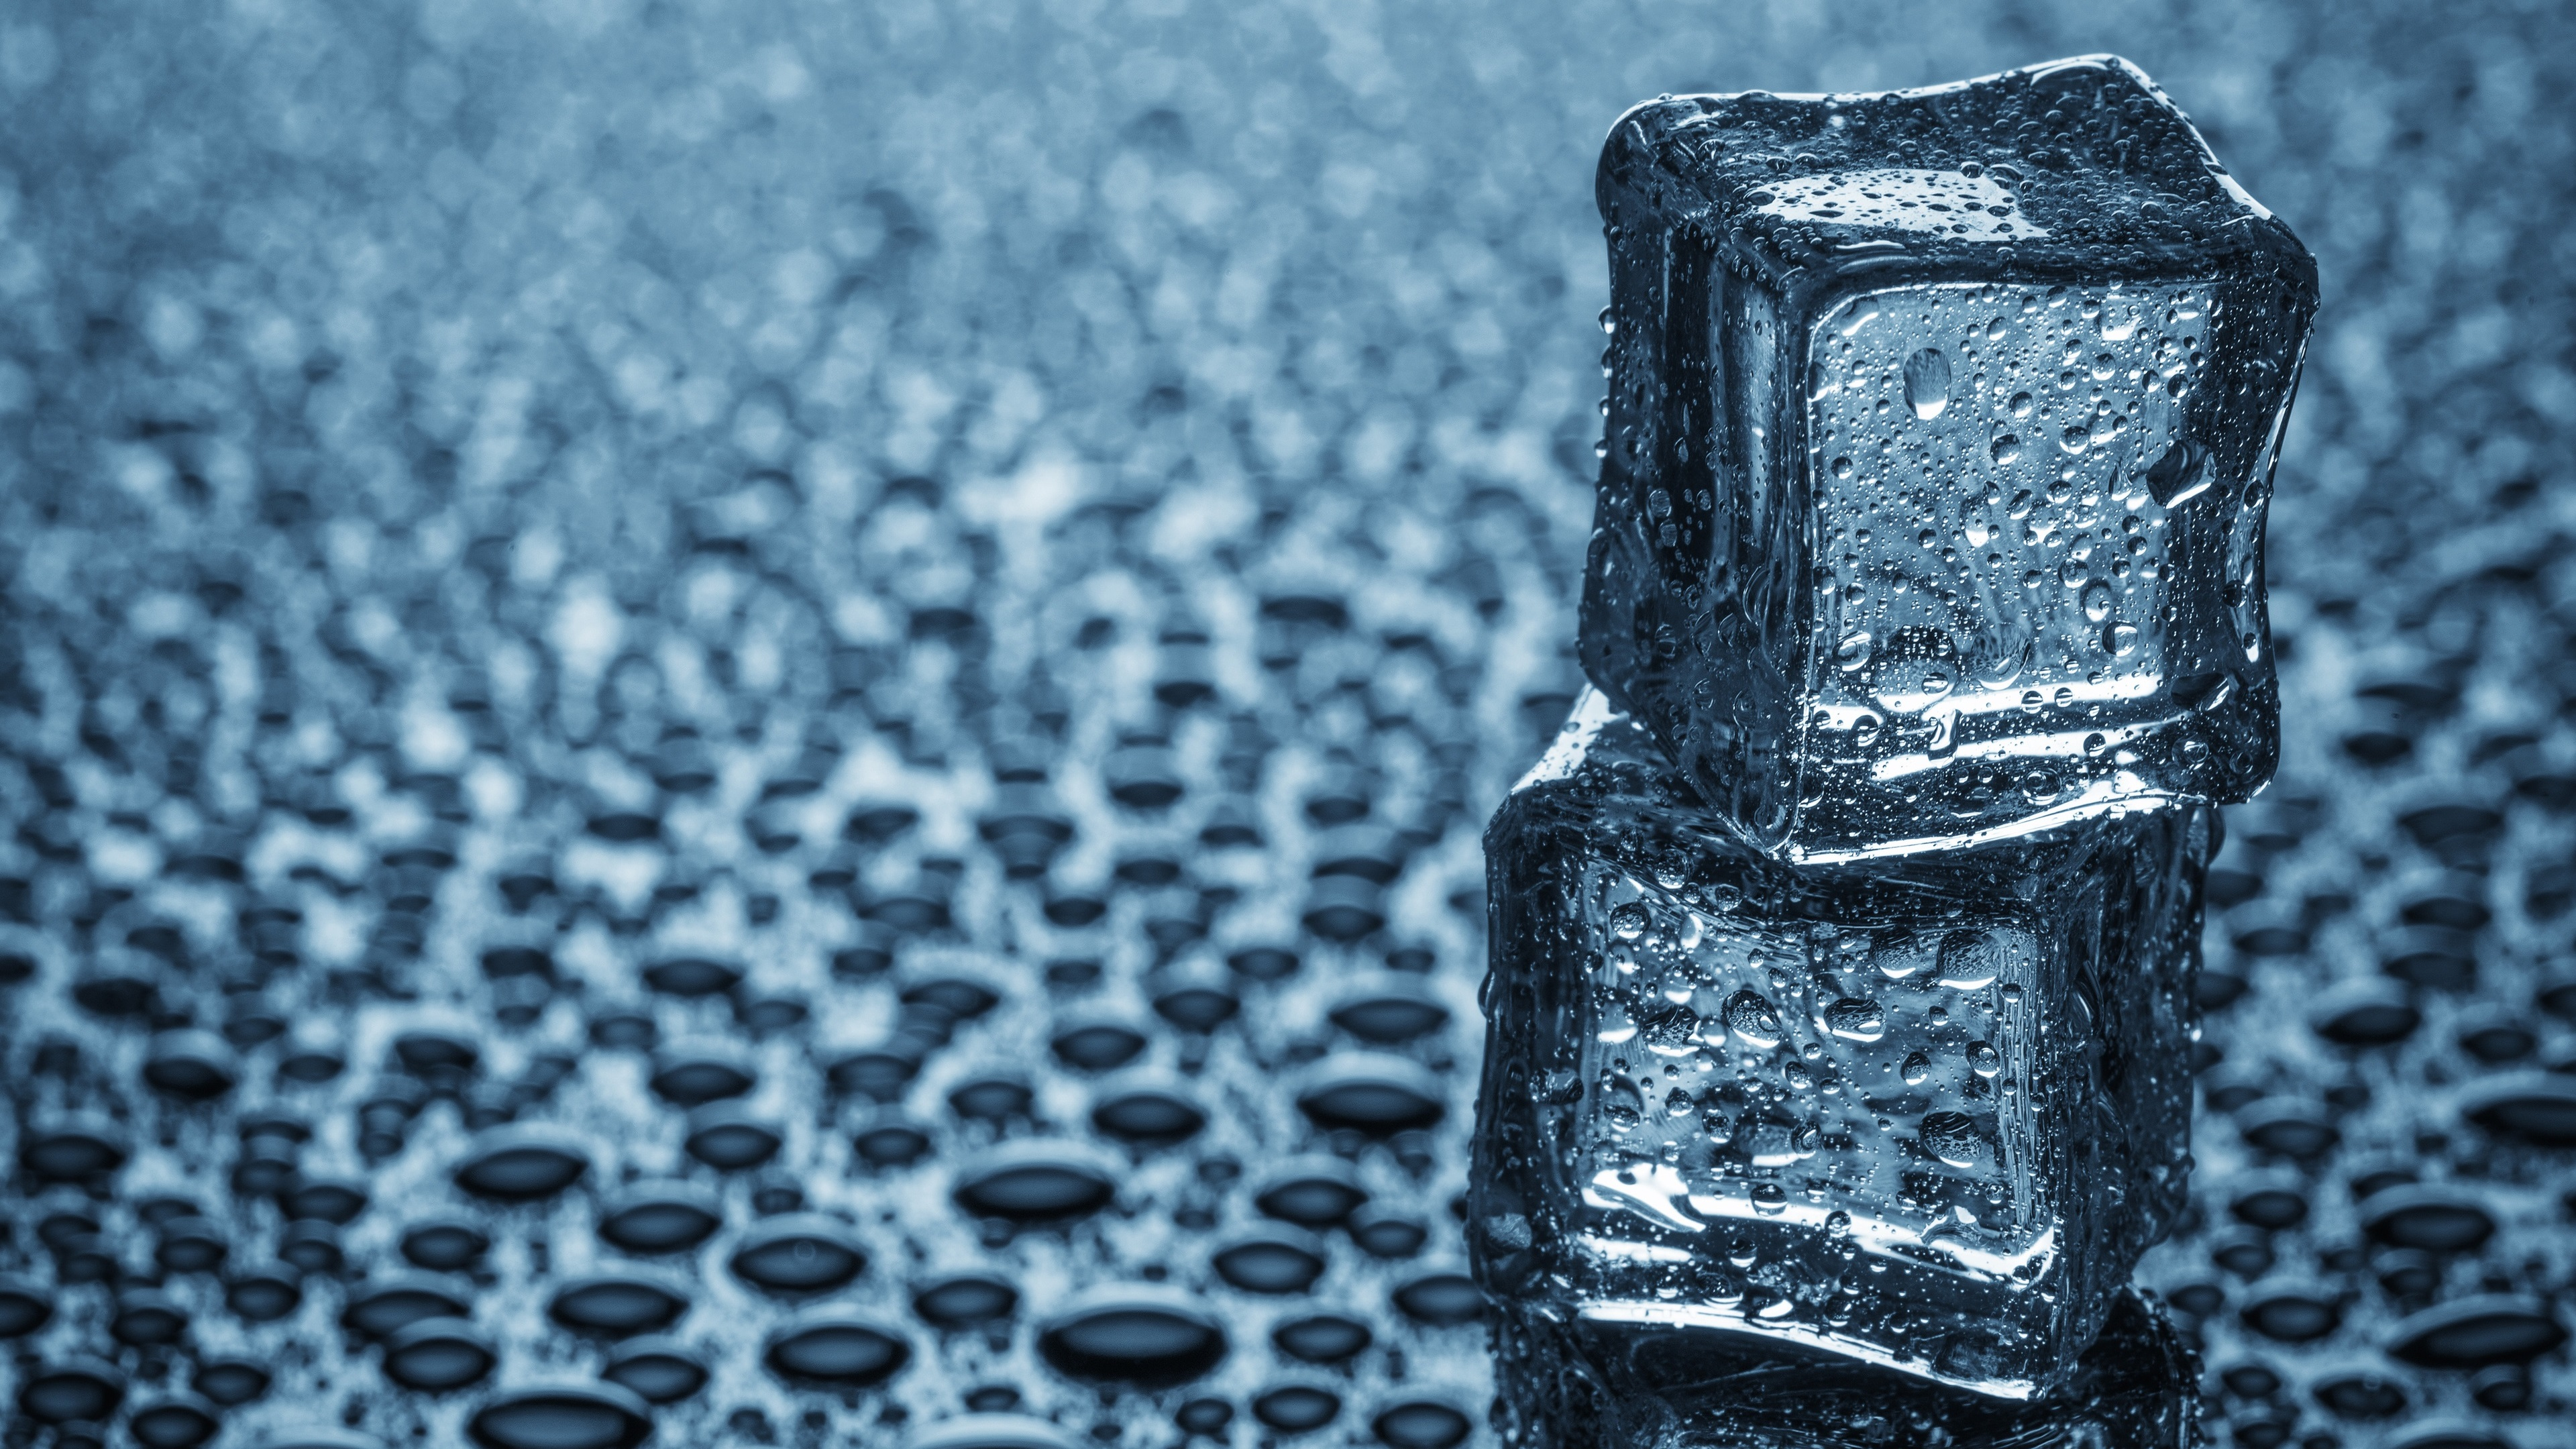 Wallpaper Two Ice Cubes Water Drops 3840x2160 UHD 4K Picture Image